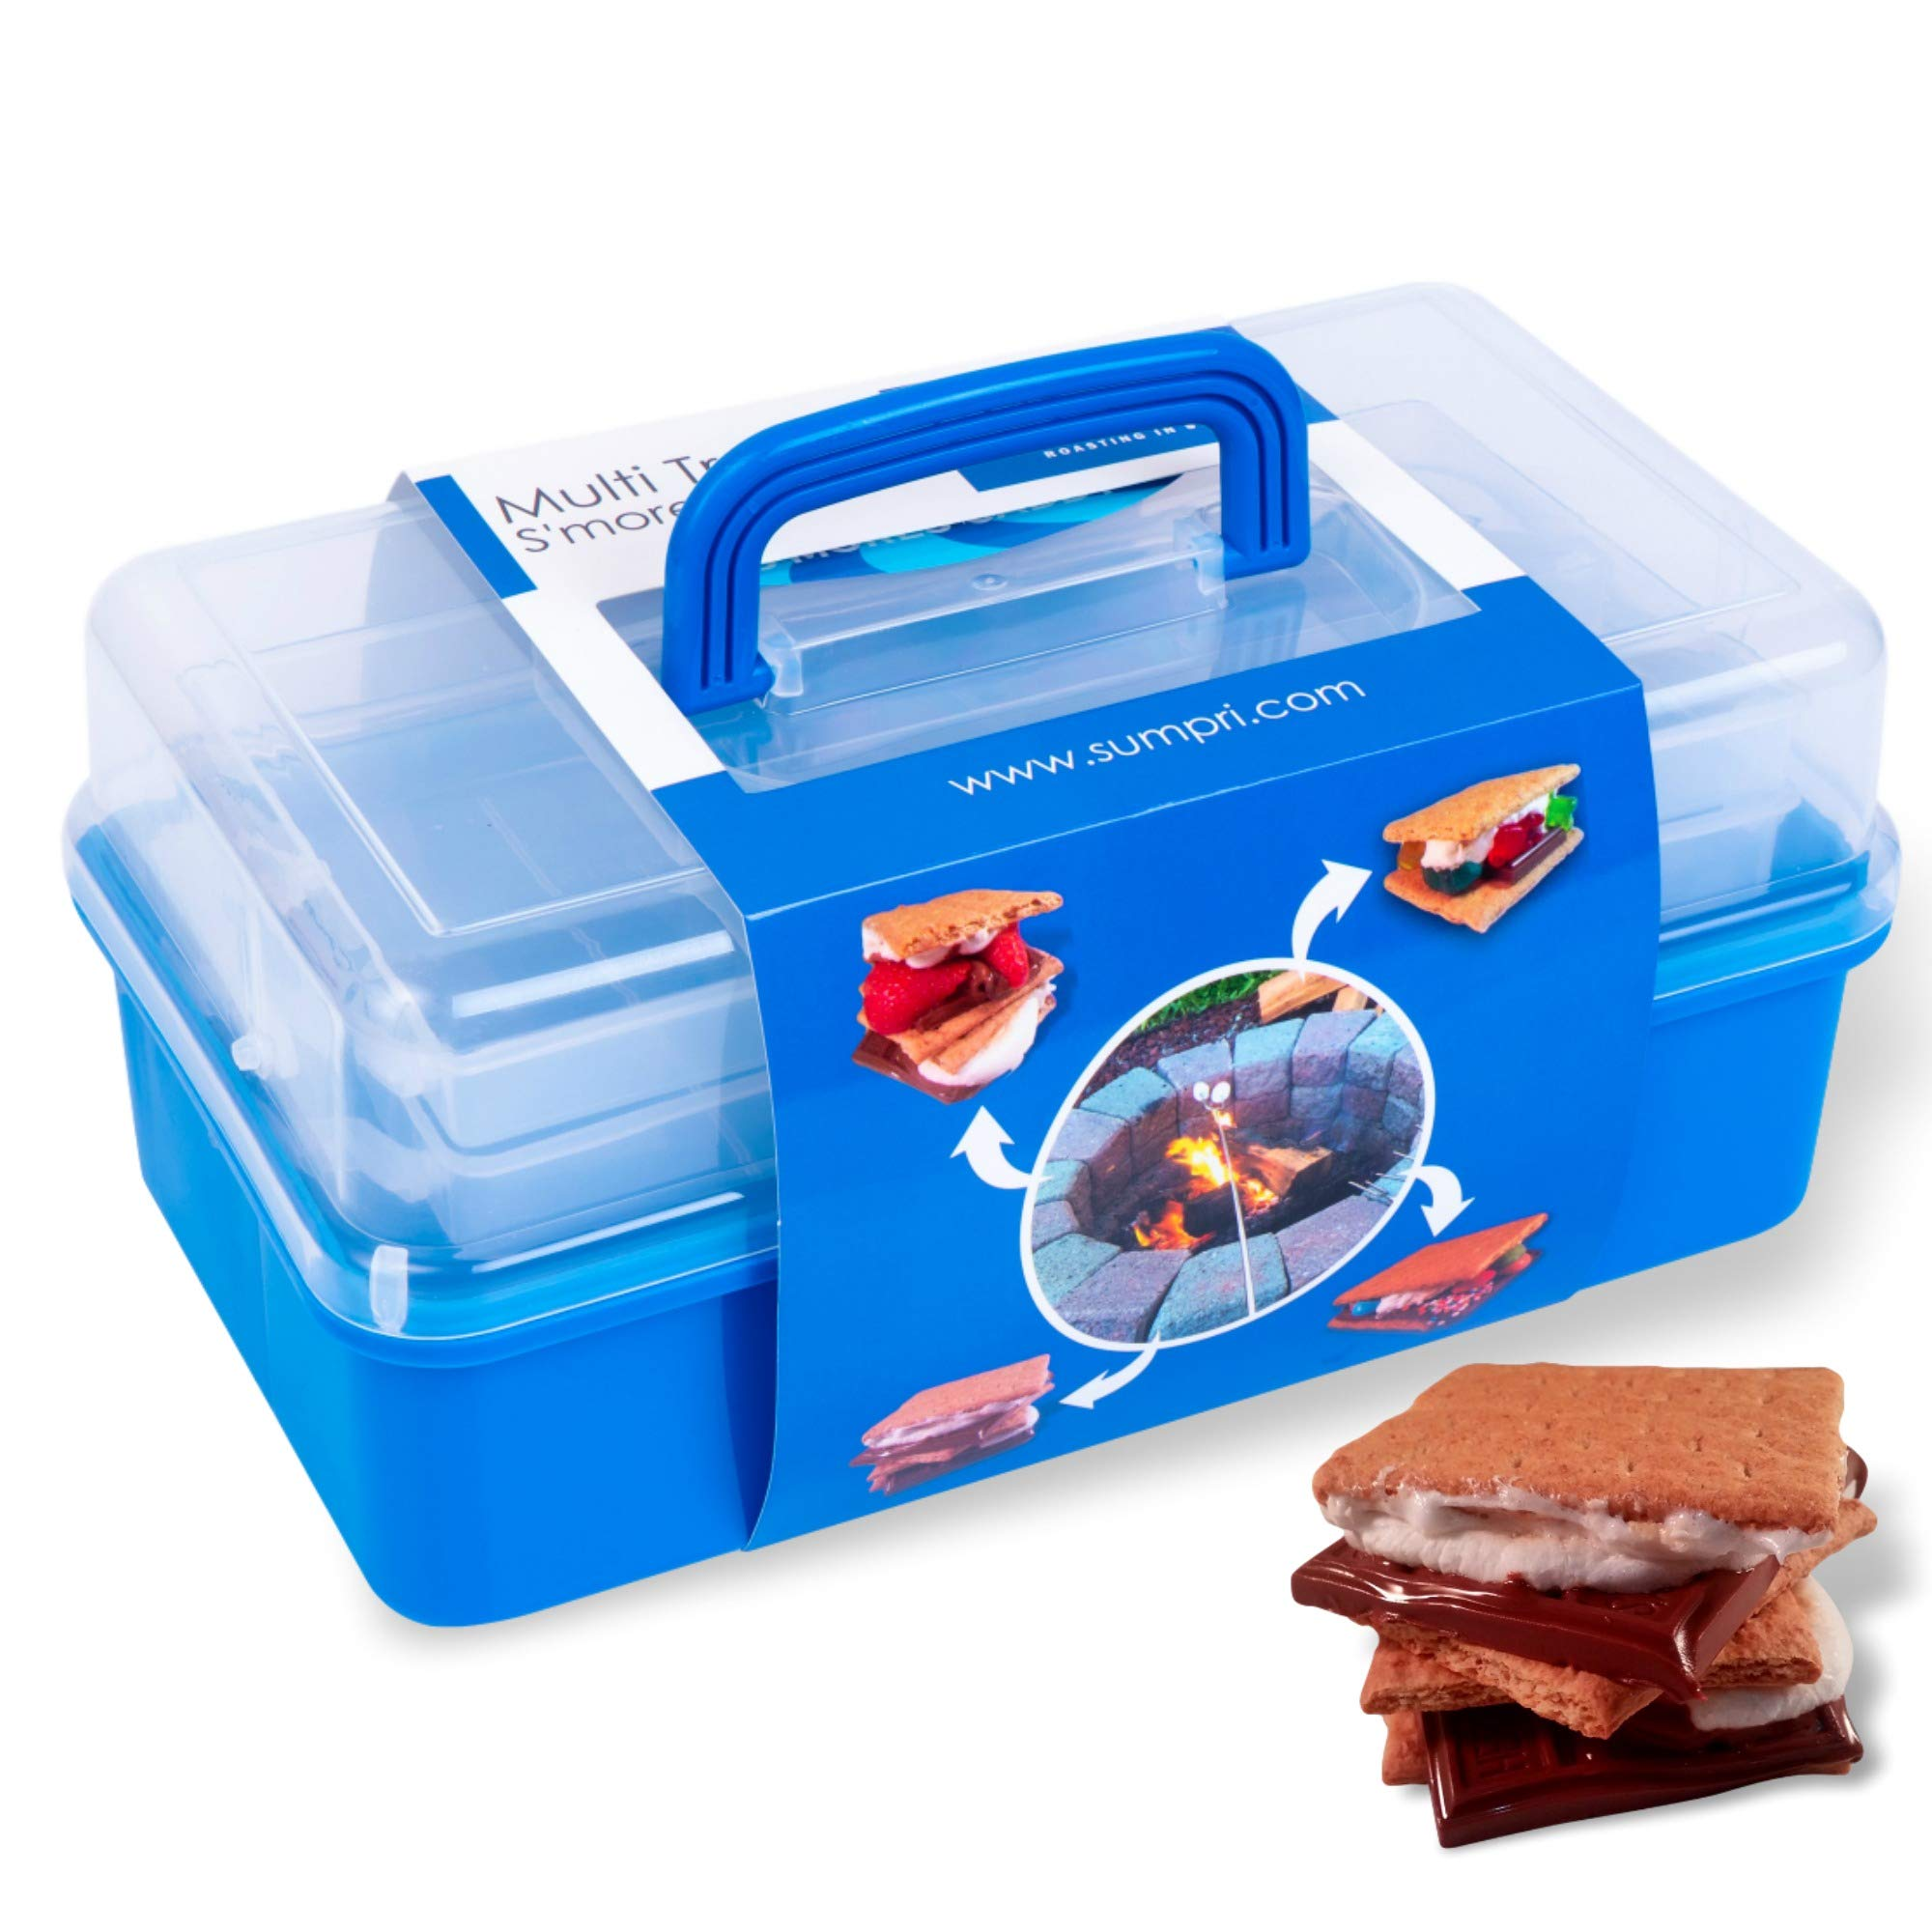 SUMPRI Smores Caddy with Two Folding Trays -Smore Box That Keeps Your Marshmallow Roasting Sticks/Crackers/Chocolate Bars Organized -Fire Pit Accessories Kit,Campfire Smore Skewers Storage Box (Blue) by SUMPRI (Image #1)